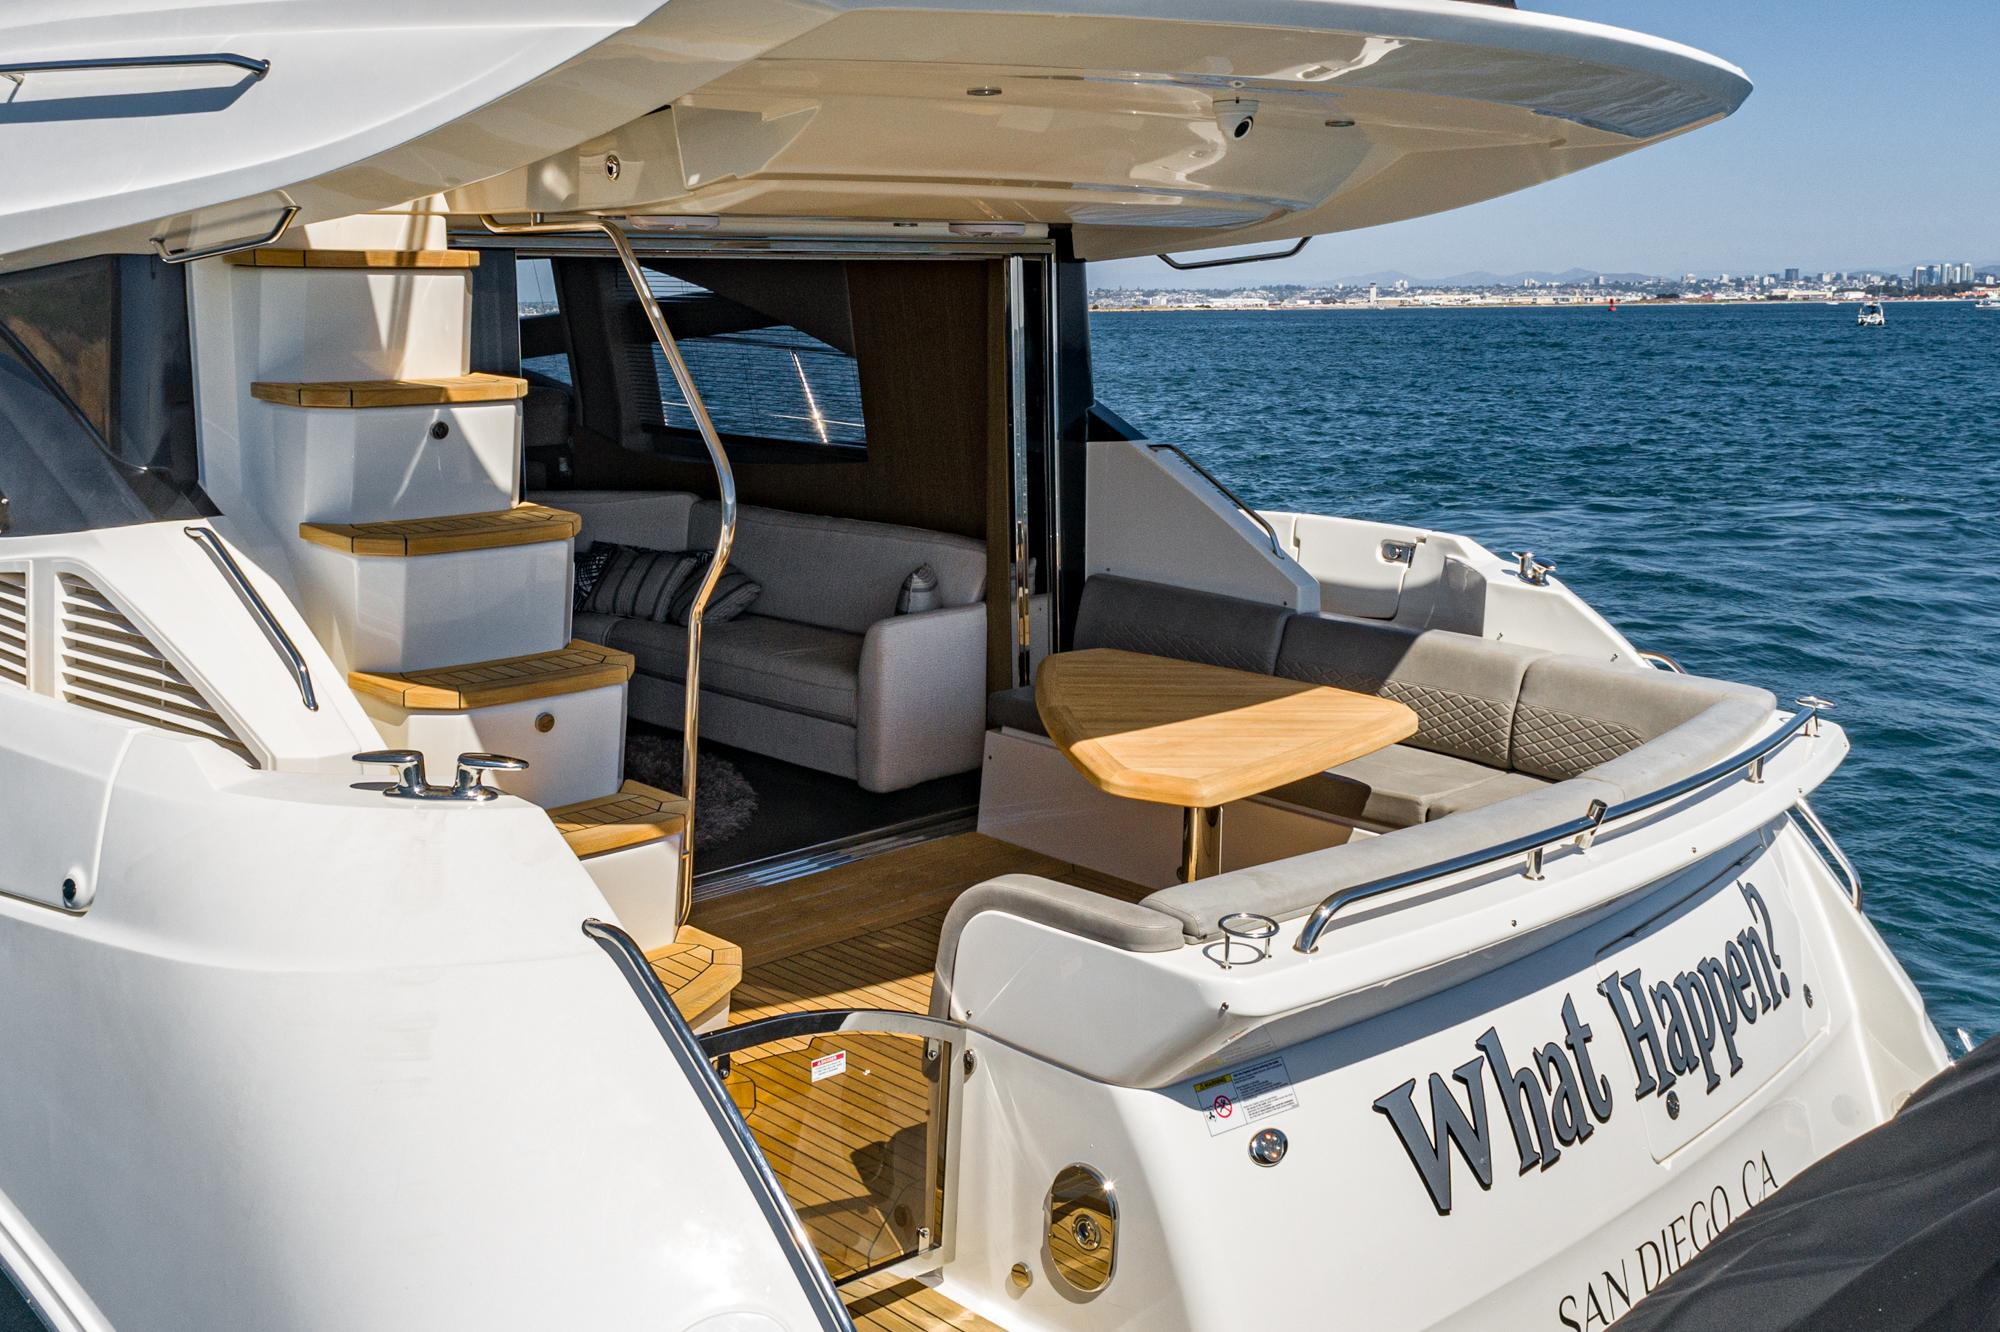 2018 Sea Ray L590 Fly #TB1501MC inventory image at Sun Country Coastal in San Diego